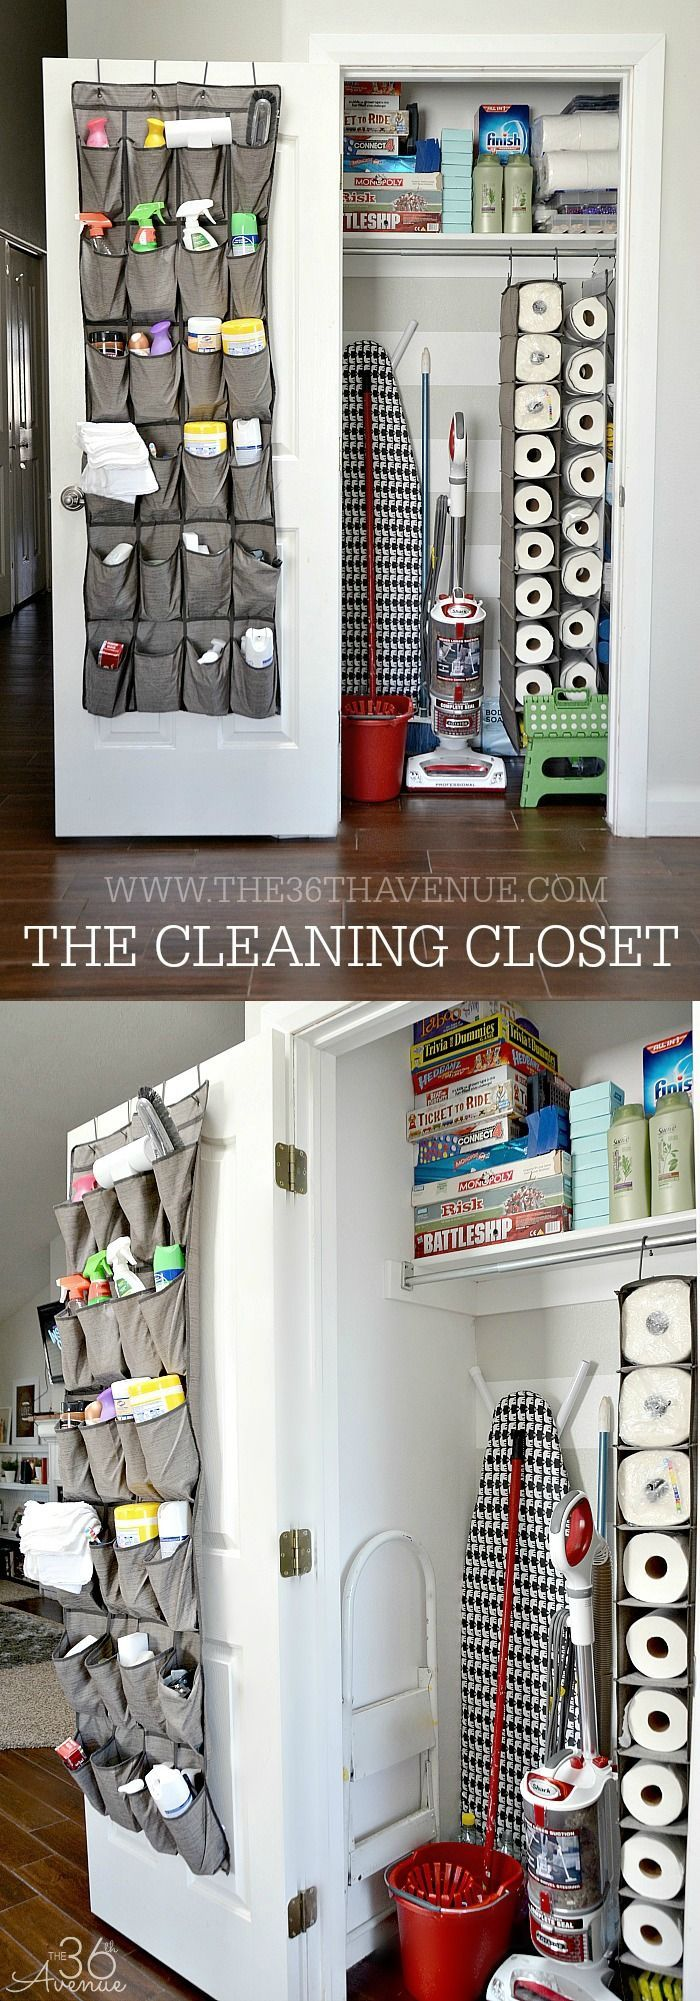 CLEANING AND ORGANIZING CLOSET DIY TIPS AND IDEAS .